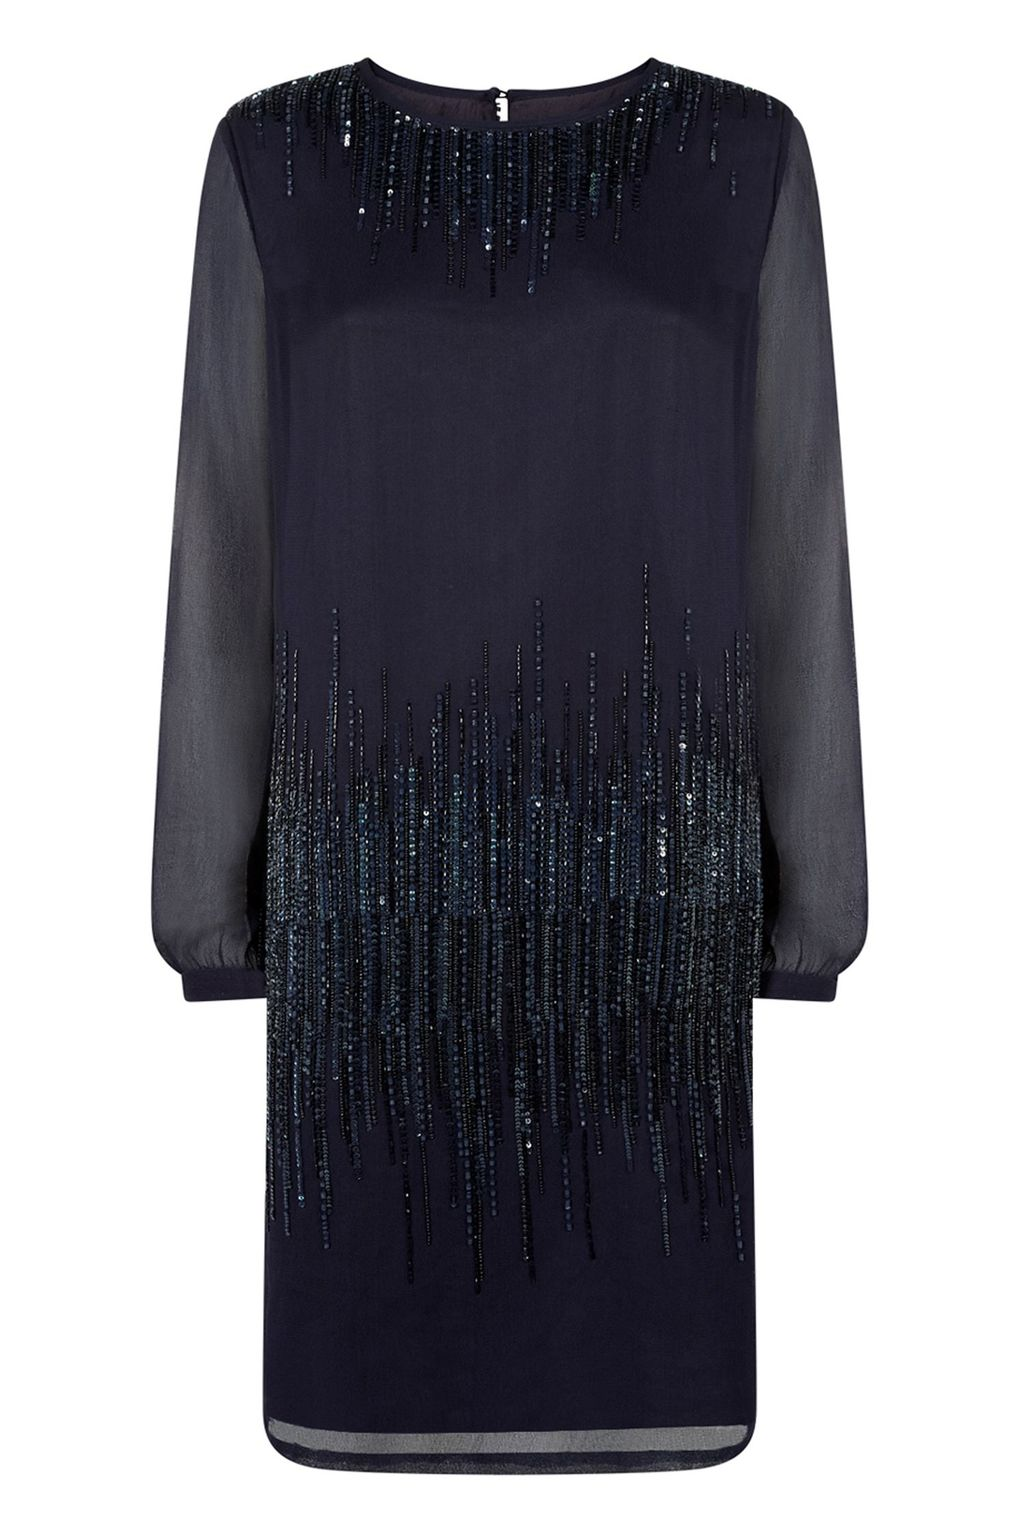 Dawn Dress, Navy - style: shift; neckline: round neck; pattern: plain; predominant colour: navy; occasions: evening, occasion; length: just above the knee; fit: straight cut; fibres: viscose/rayon - 100%; sleeve length: long sleeve; sleeve style: standard; texture group: sheer fabrics/chiffon/organza etc.; pattern type: fabric; embellishment: sequins; season: a/w 2014; wardrobe: event; embellishment location: hip, neck